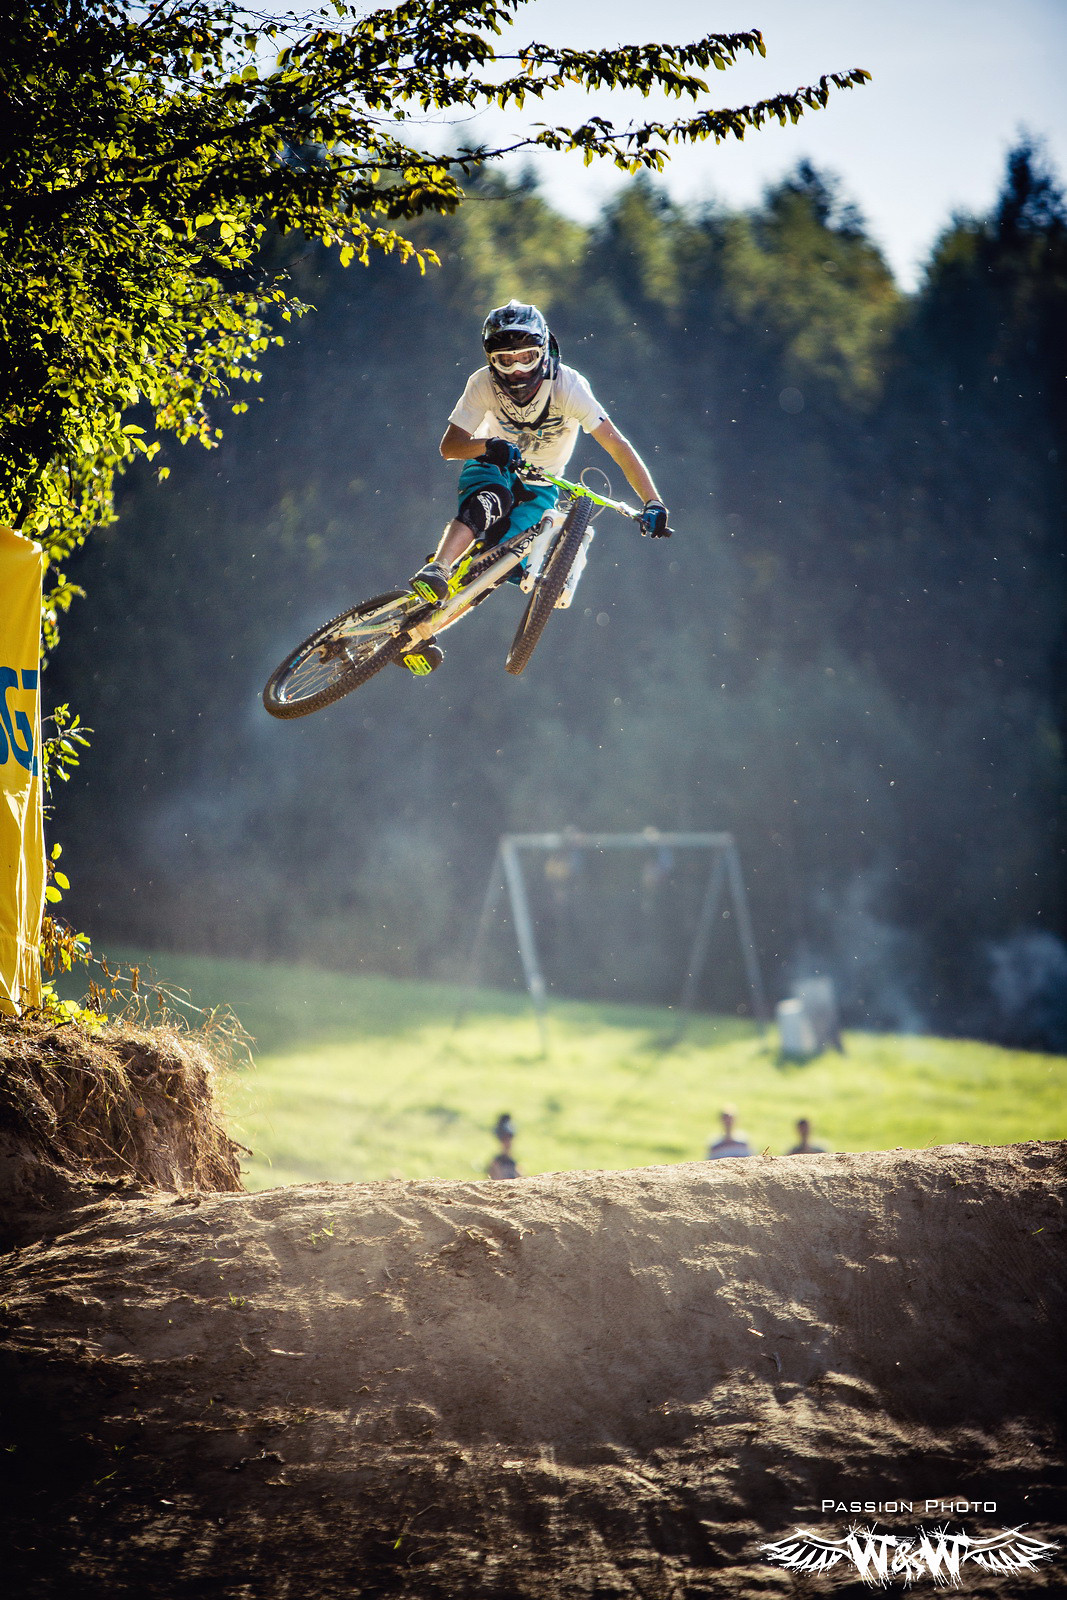 air - JawsMtb - Mountain Biking Pictures - Vital MTB